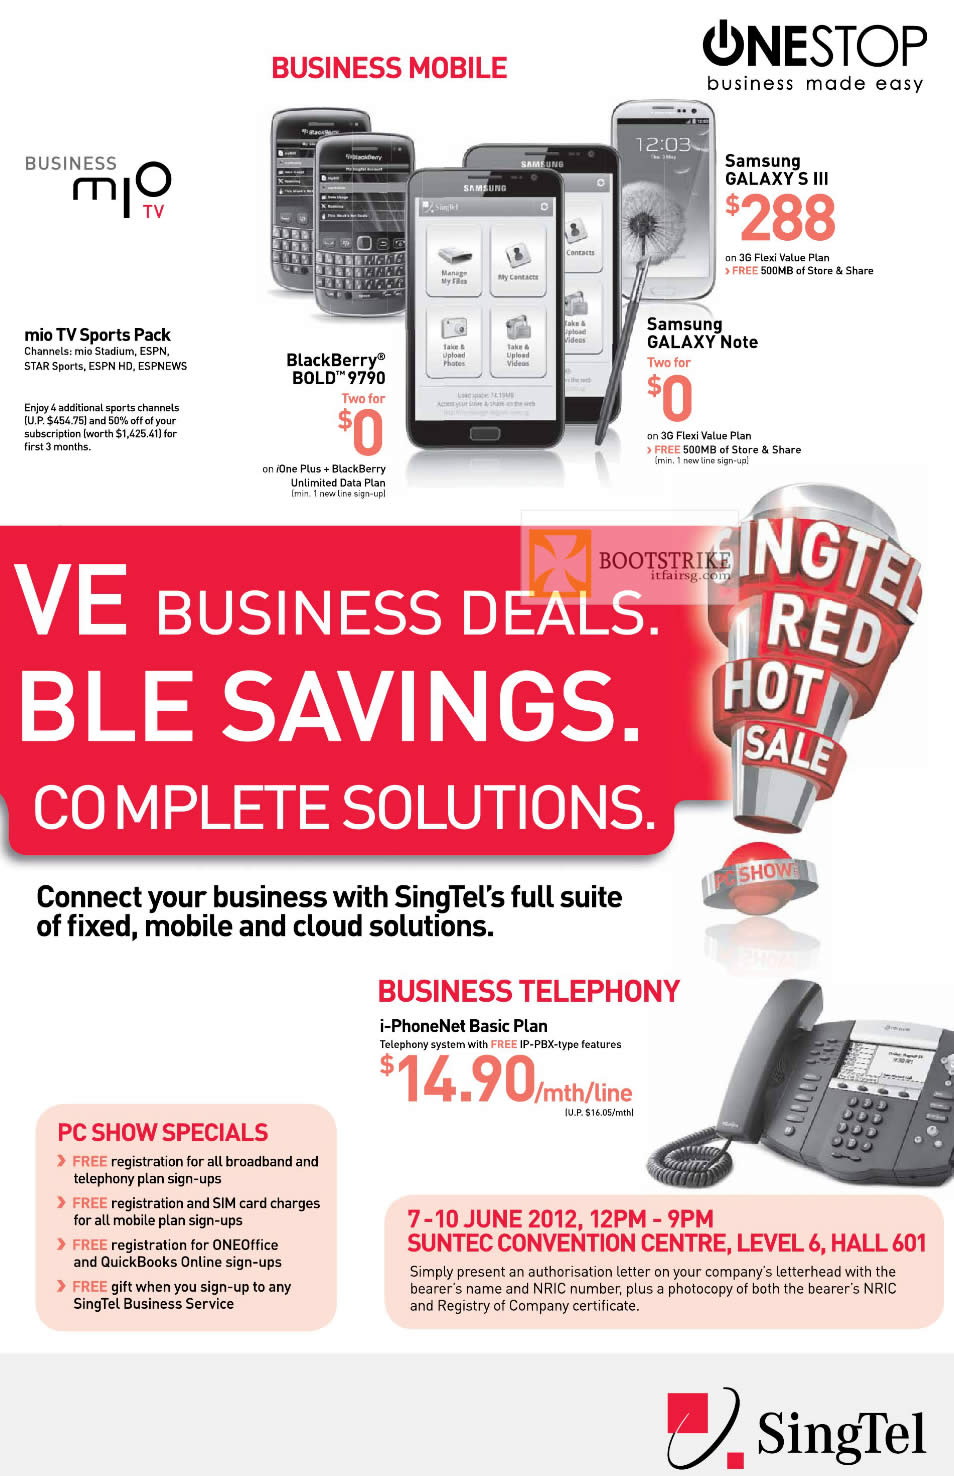 PC SHOW 2012 price list image brochure of Singtel Business Specials, Blackberry Bold 9790, Samsung Galaxy S III, Note, Mio TV, I-PhoneNet Basic Telephony